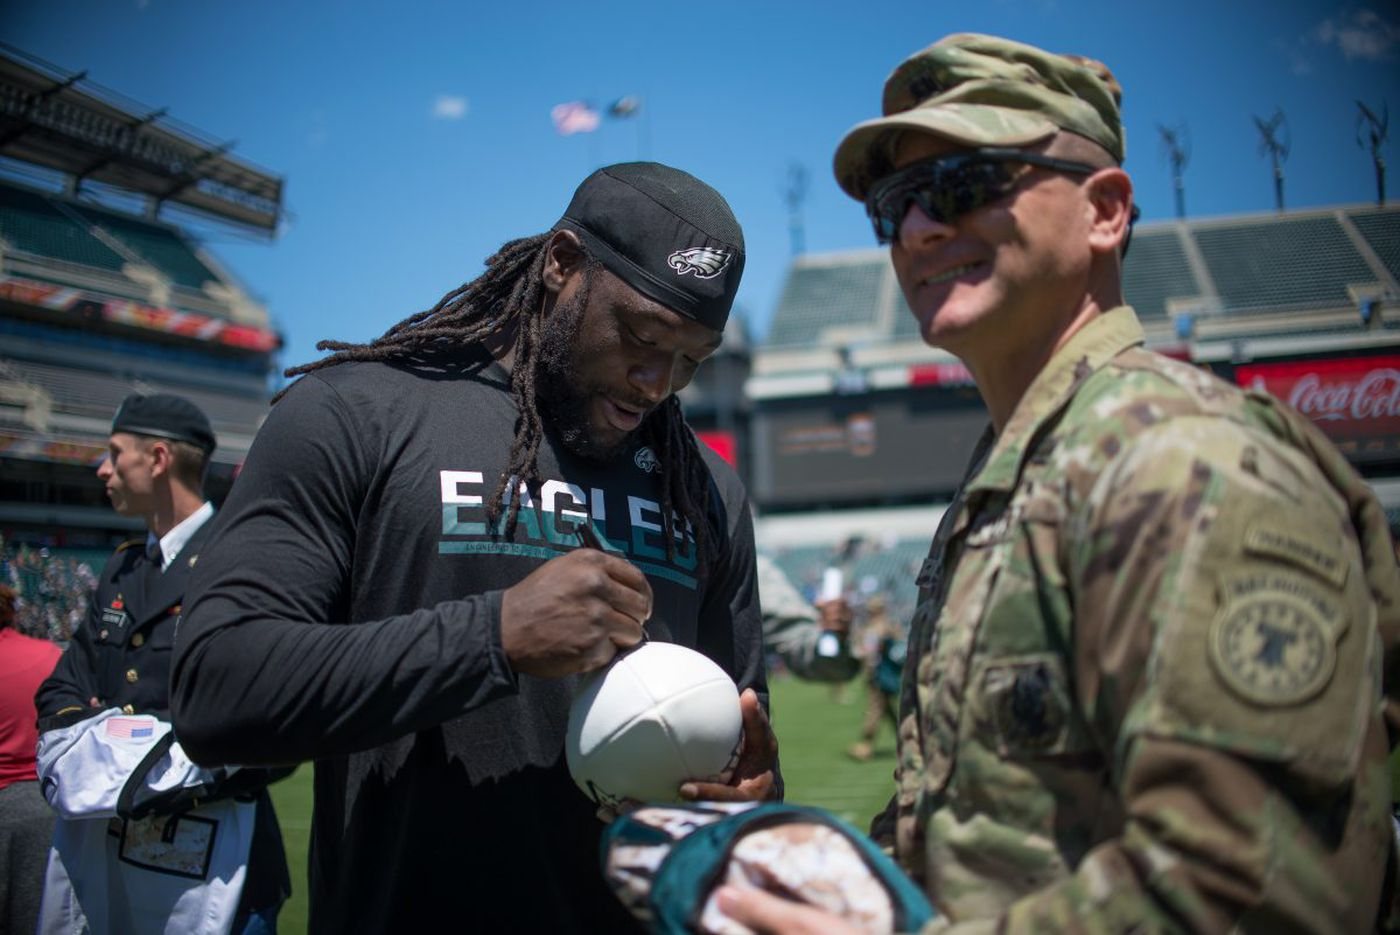 Expect LeGarrette Blount to add tough inside running - and TDs